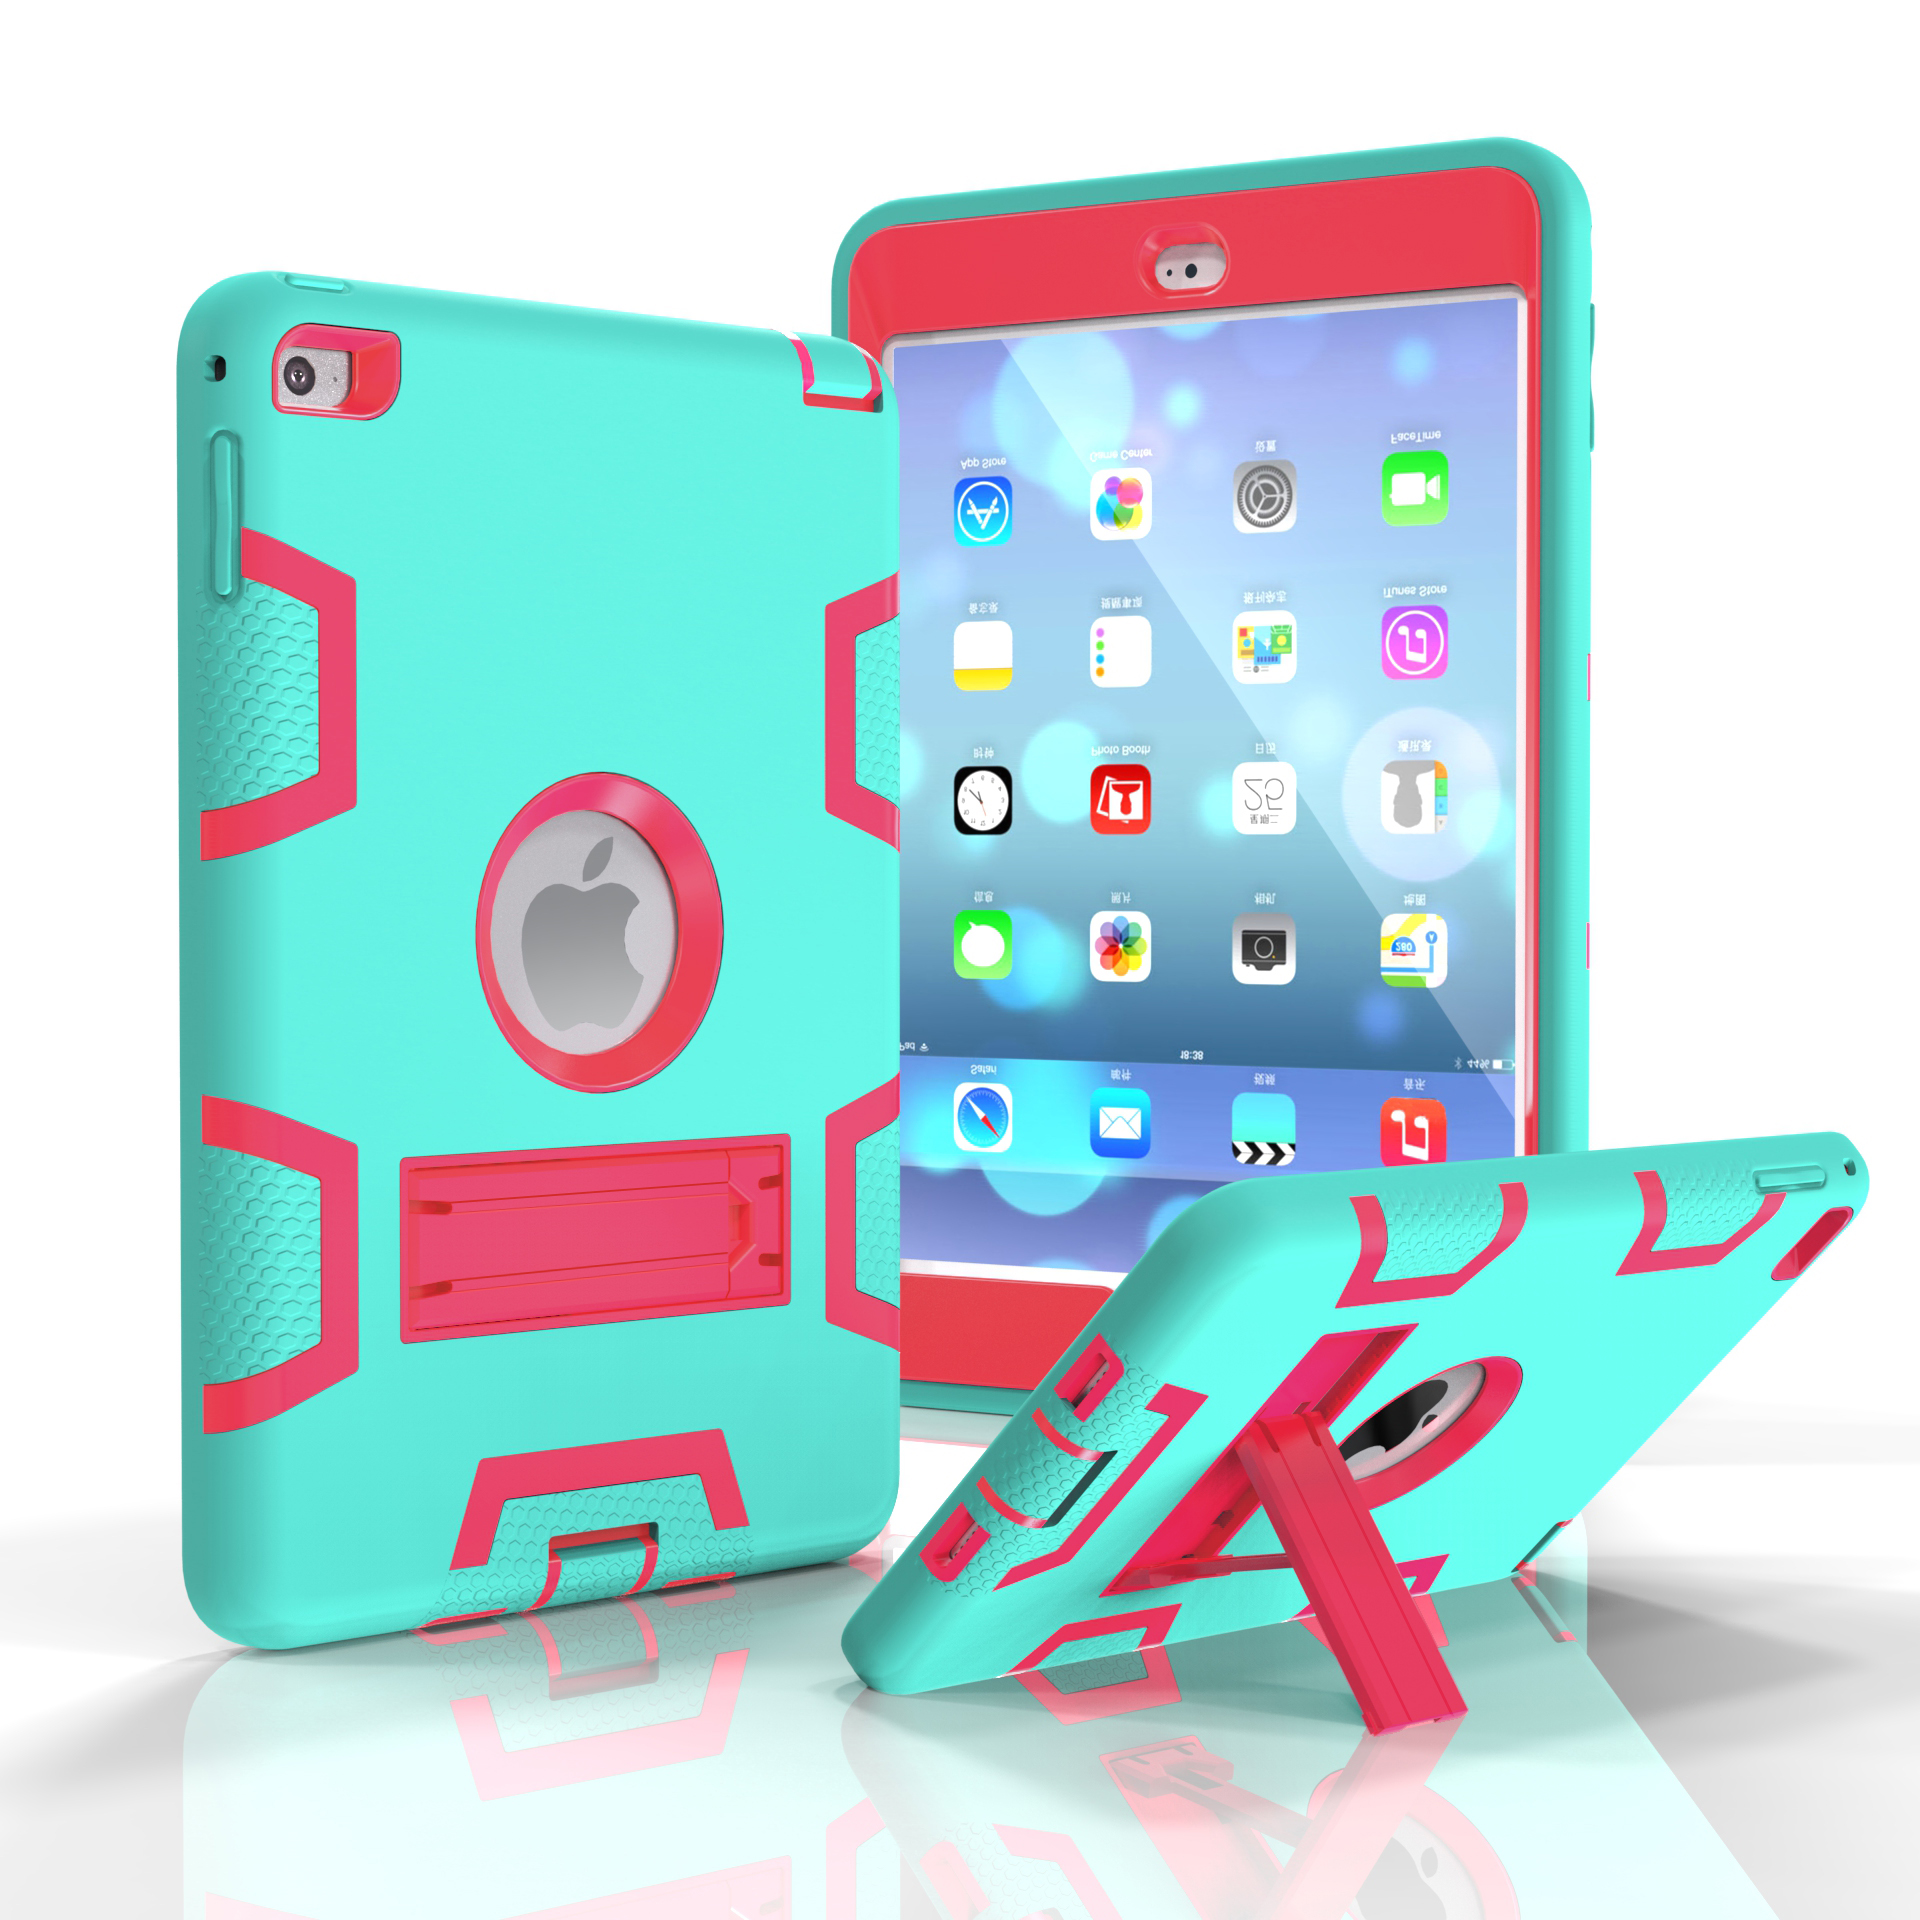 For IPAD MINI 4 PC+ Silicone Hit Color Armor Case Tri-proof Shockproof Dustproof Anti-fall Protective Cover  Mint green + rose red